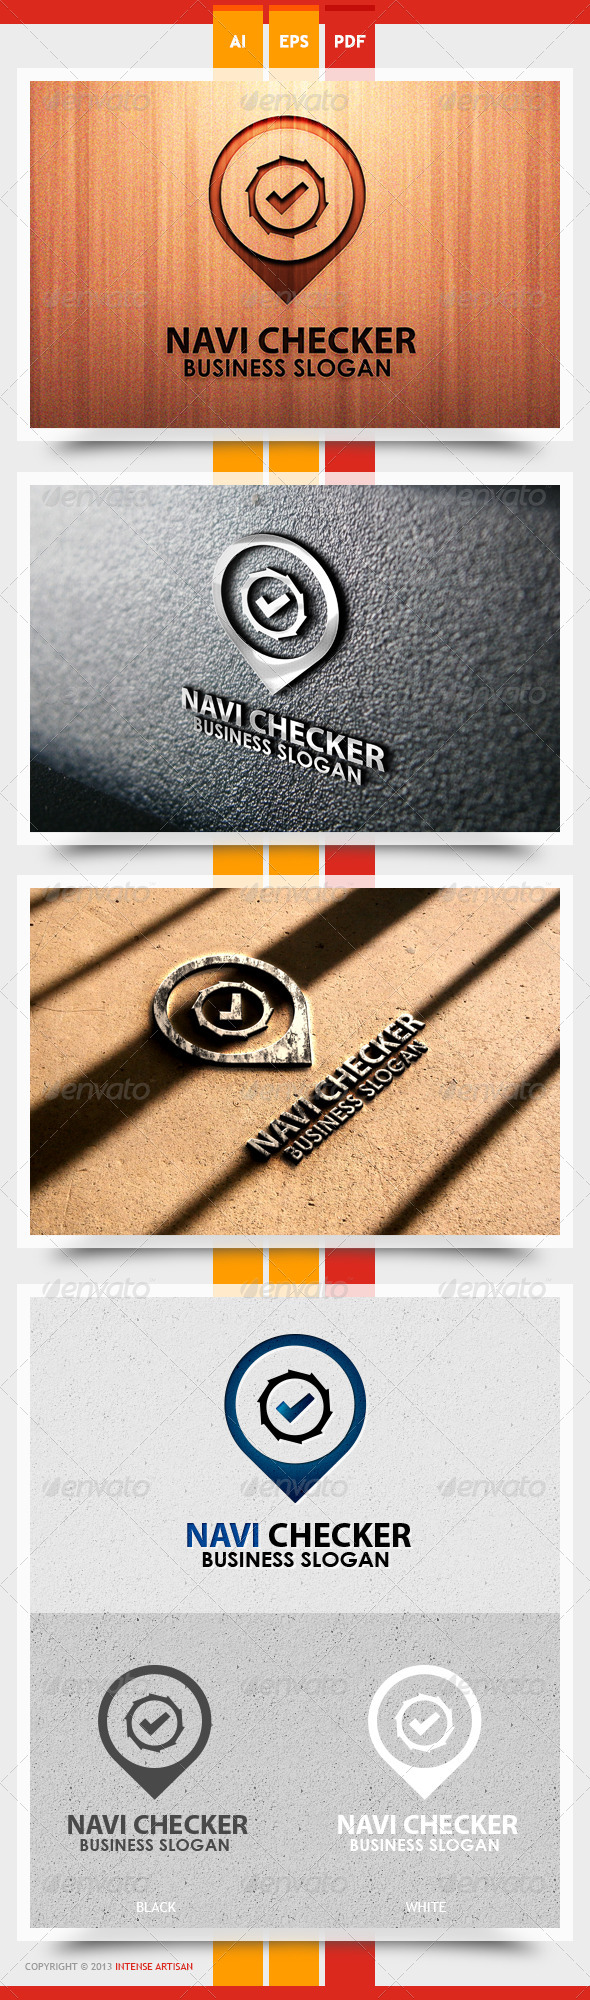 Navi Checker Logo Template - Objects Logo Templates